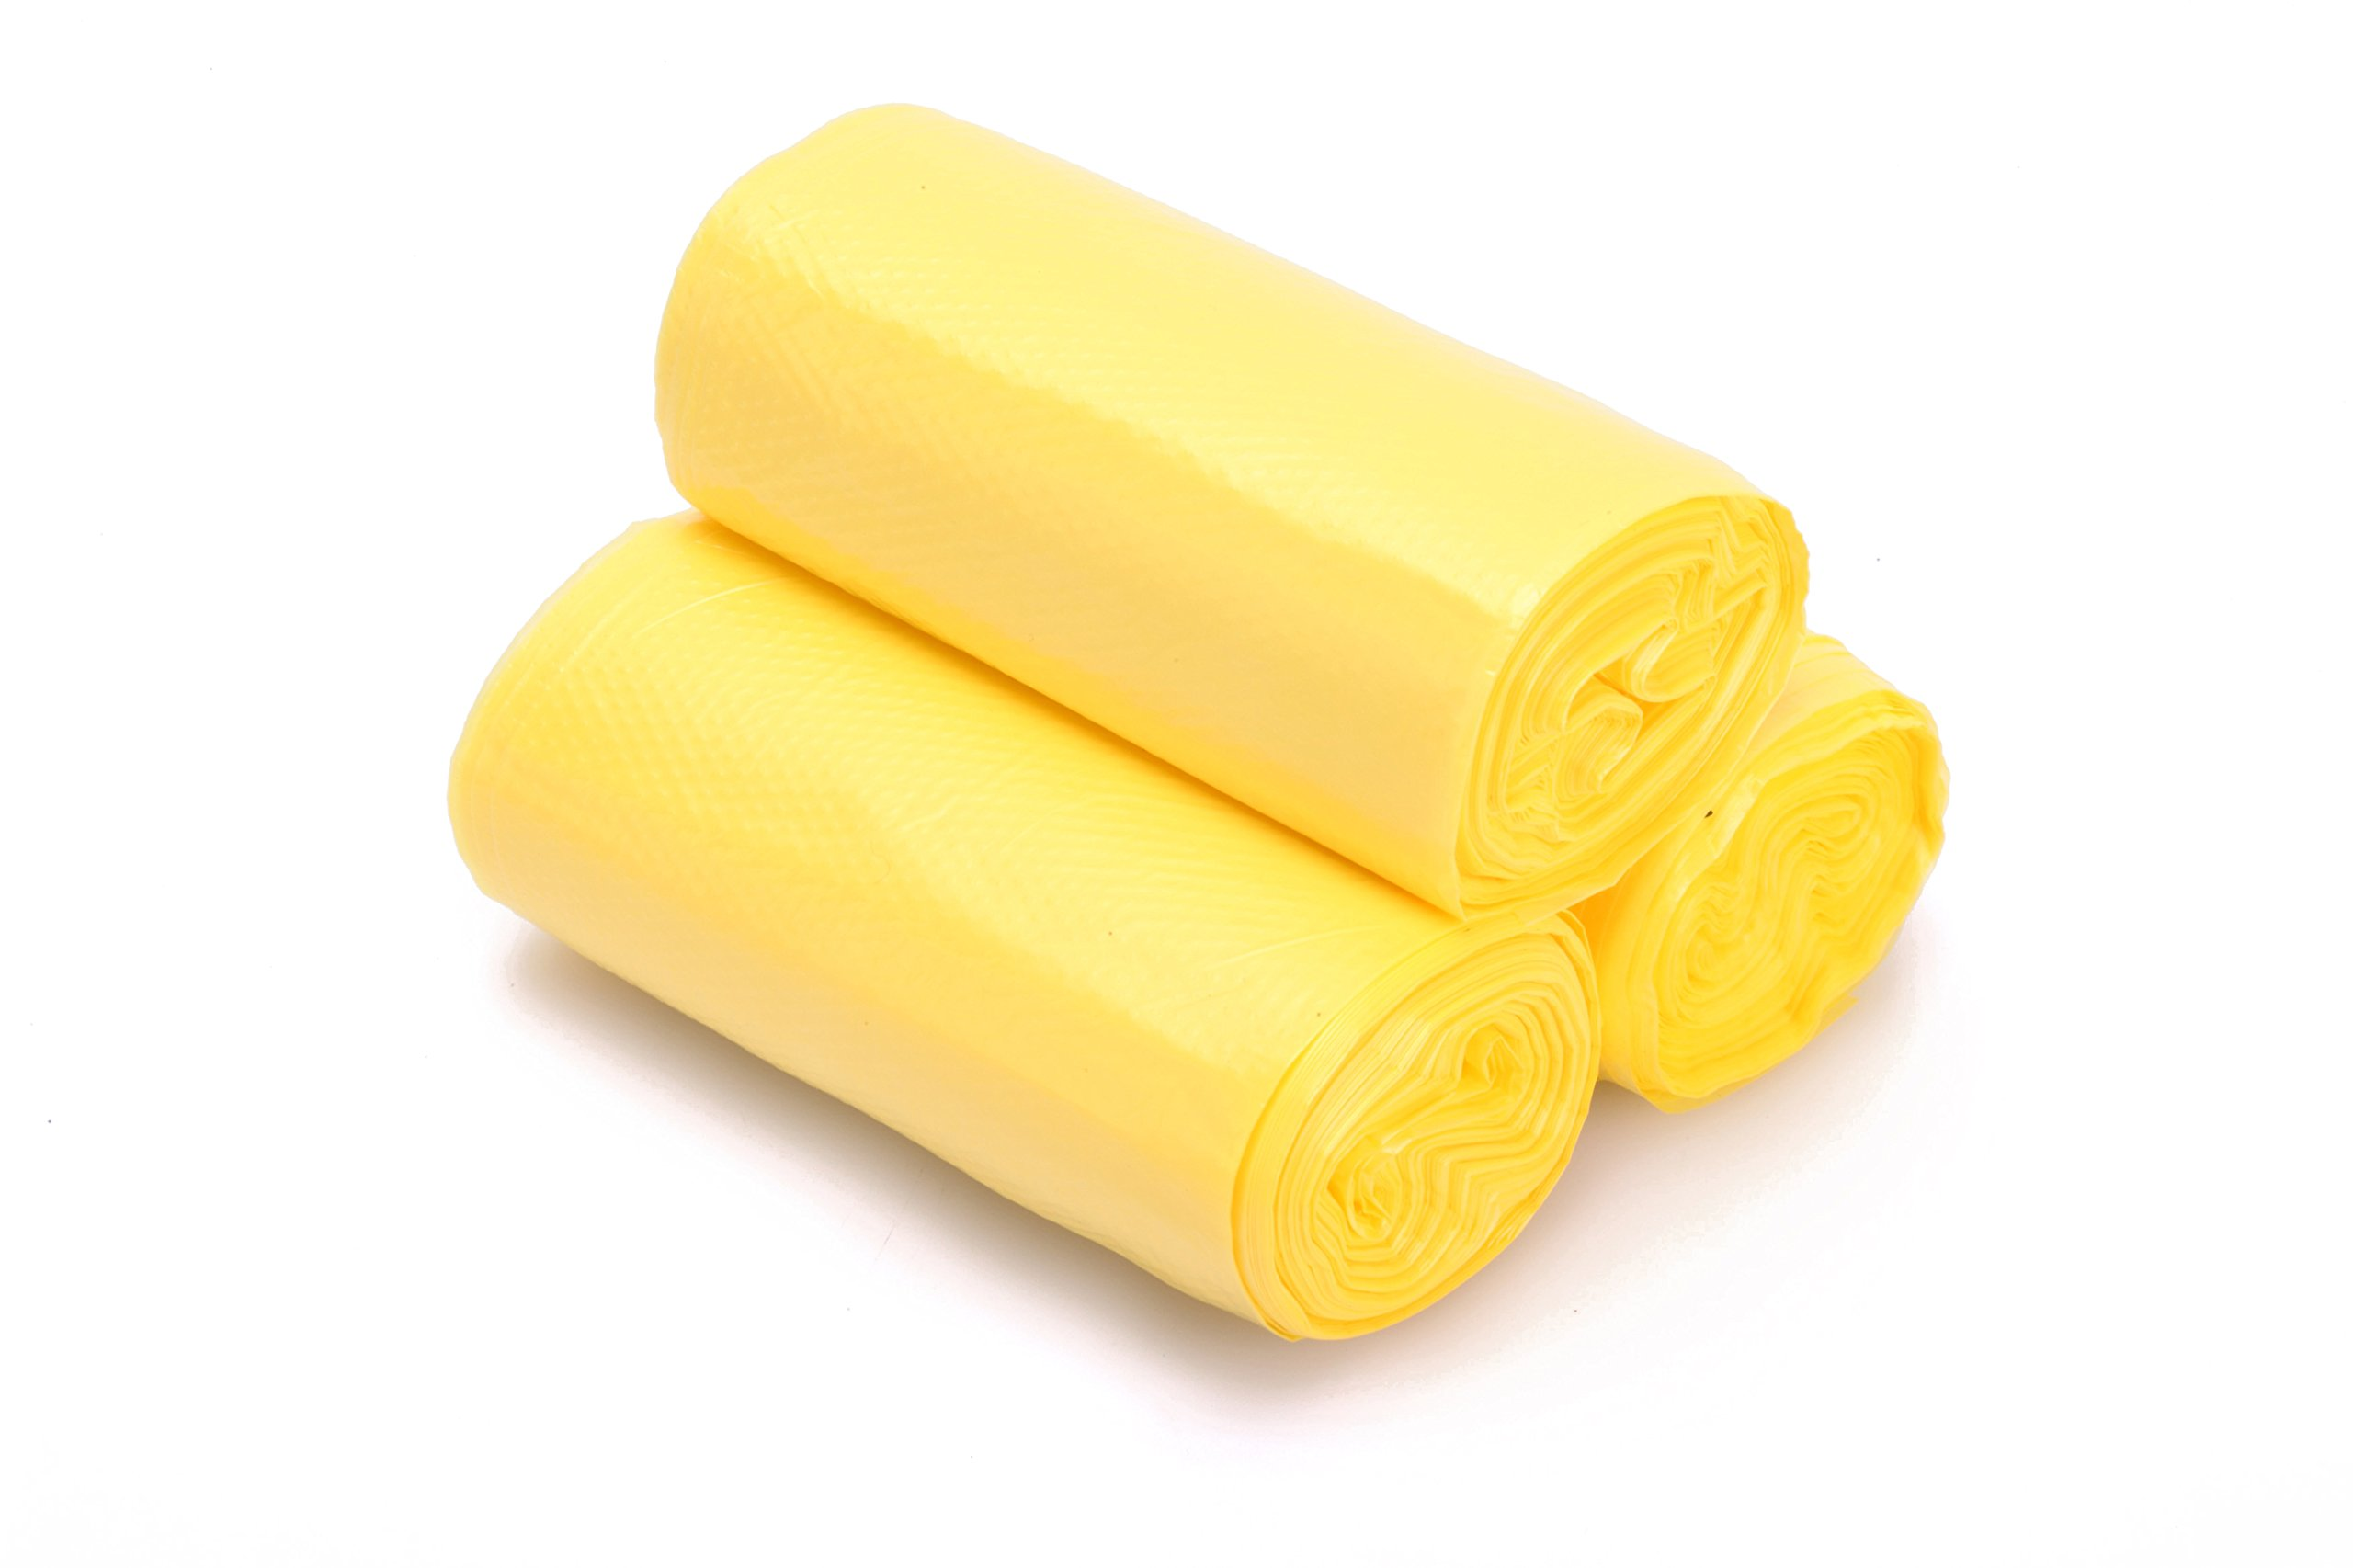 1.2-2 Gallon Small Trash Bags, office Wastebasket Trash Bags yellow 180 Counts by NO.1987 commerce